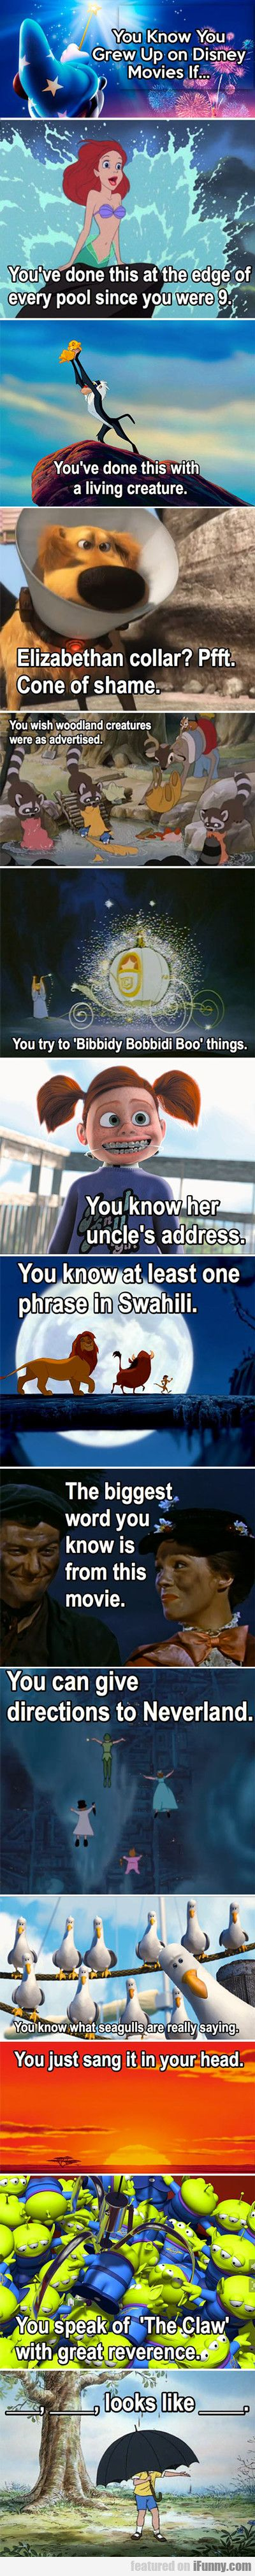 You Know You Grew Up On Disney Movies If...